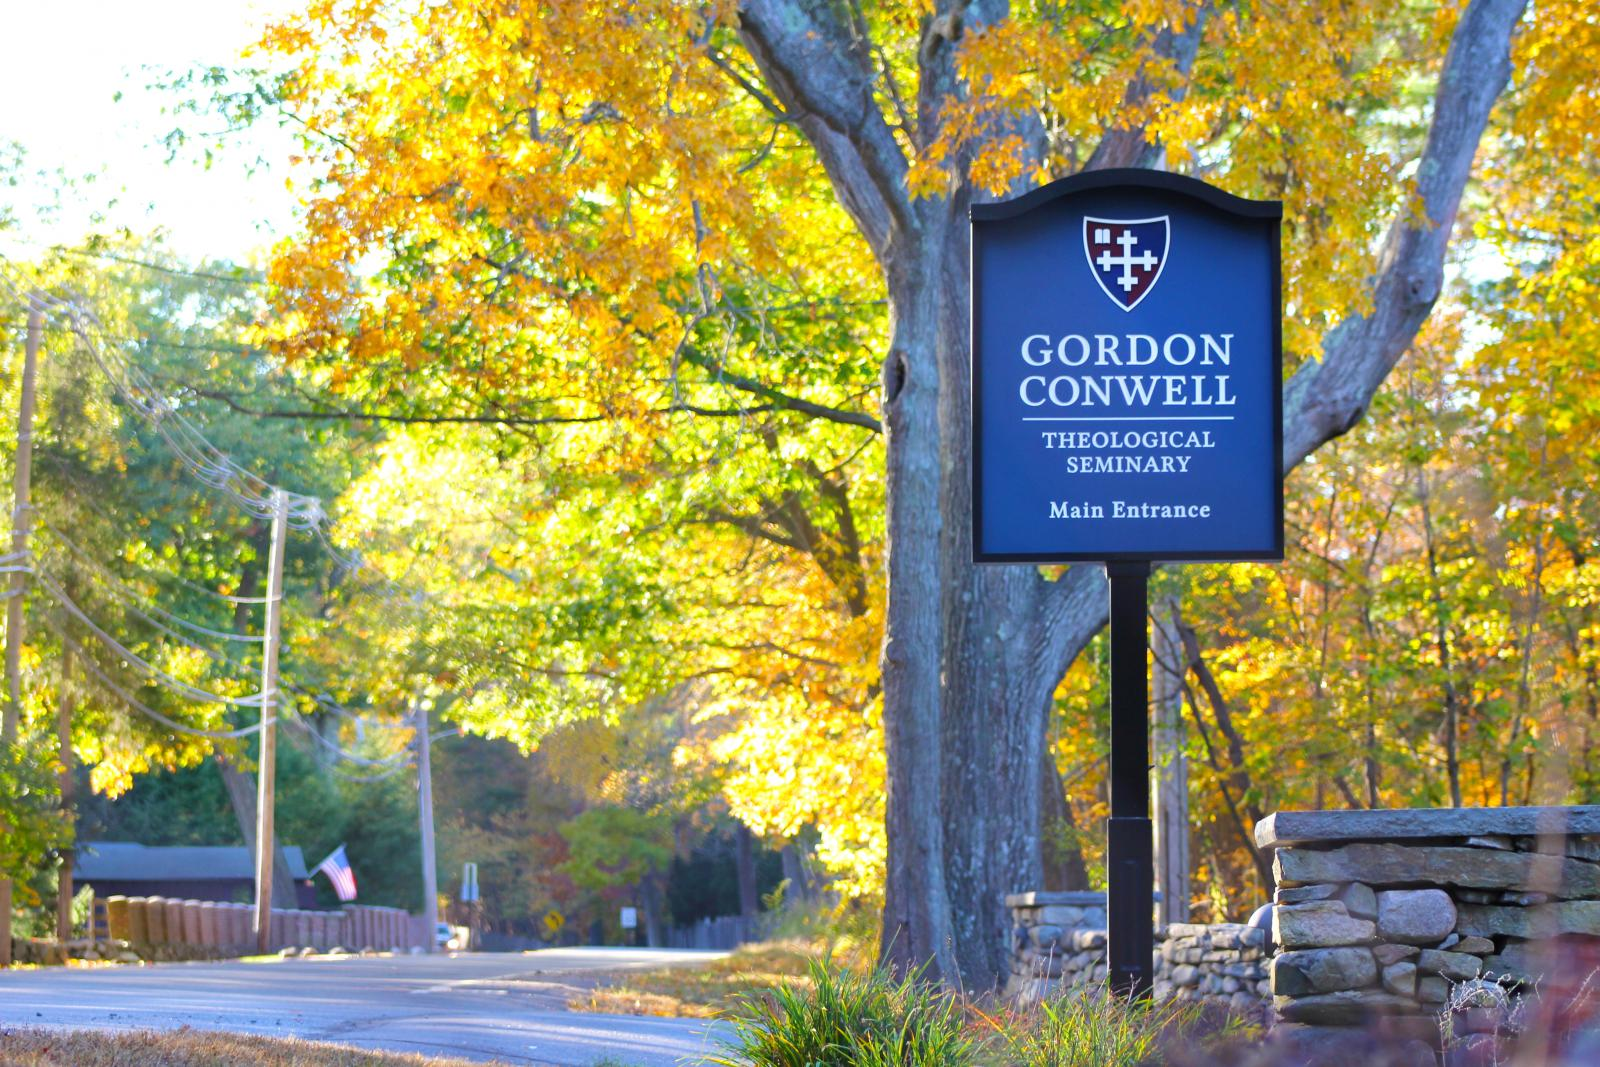 Blue and White Gordon Conwell entrance sign. Background of fall foliage.